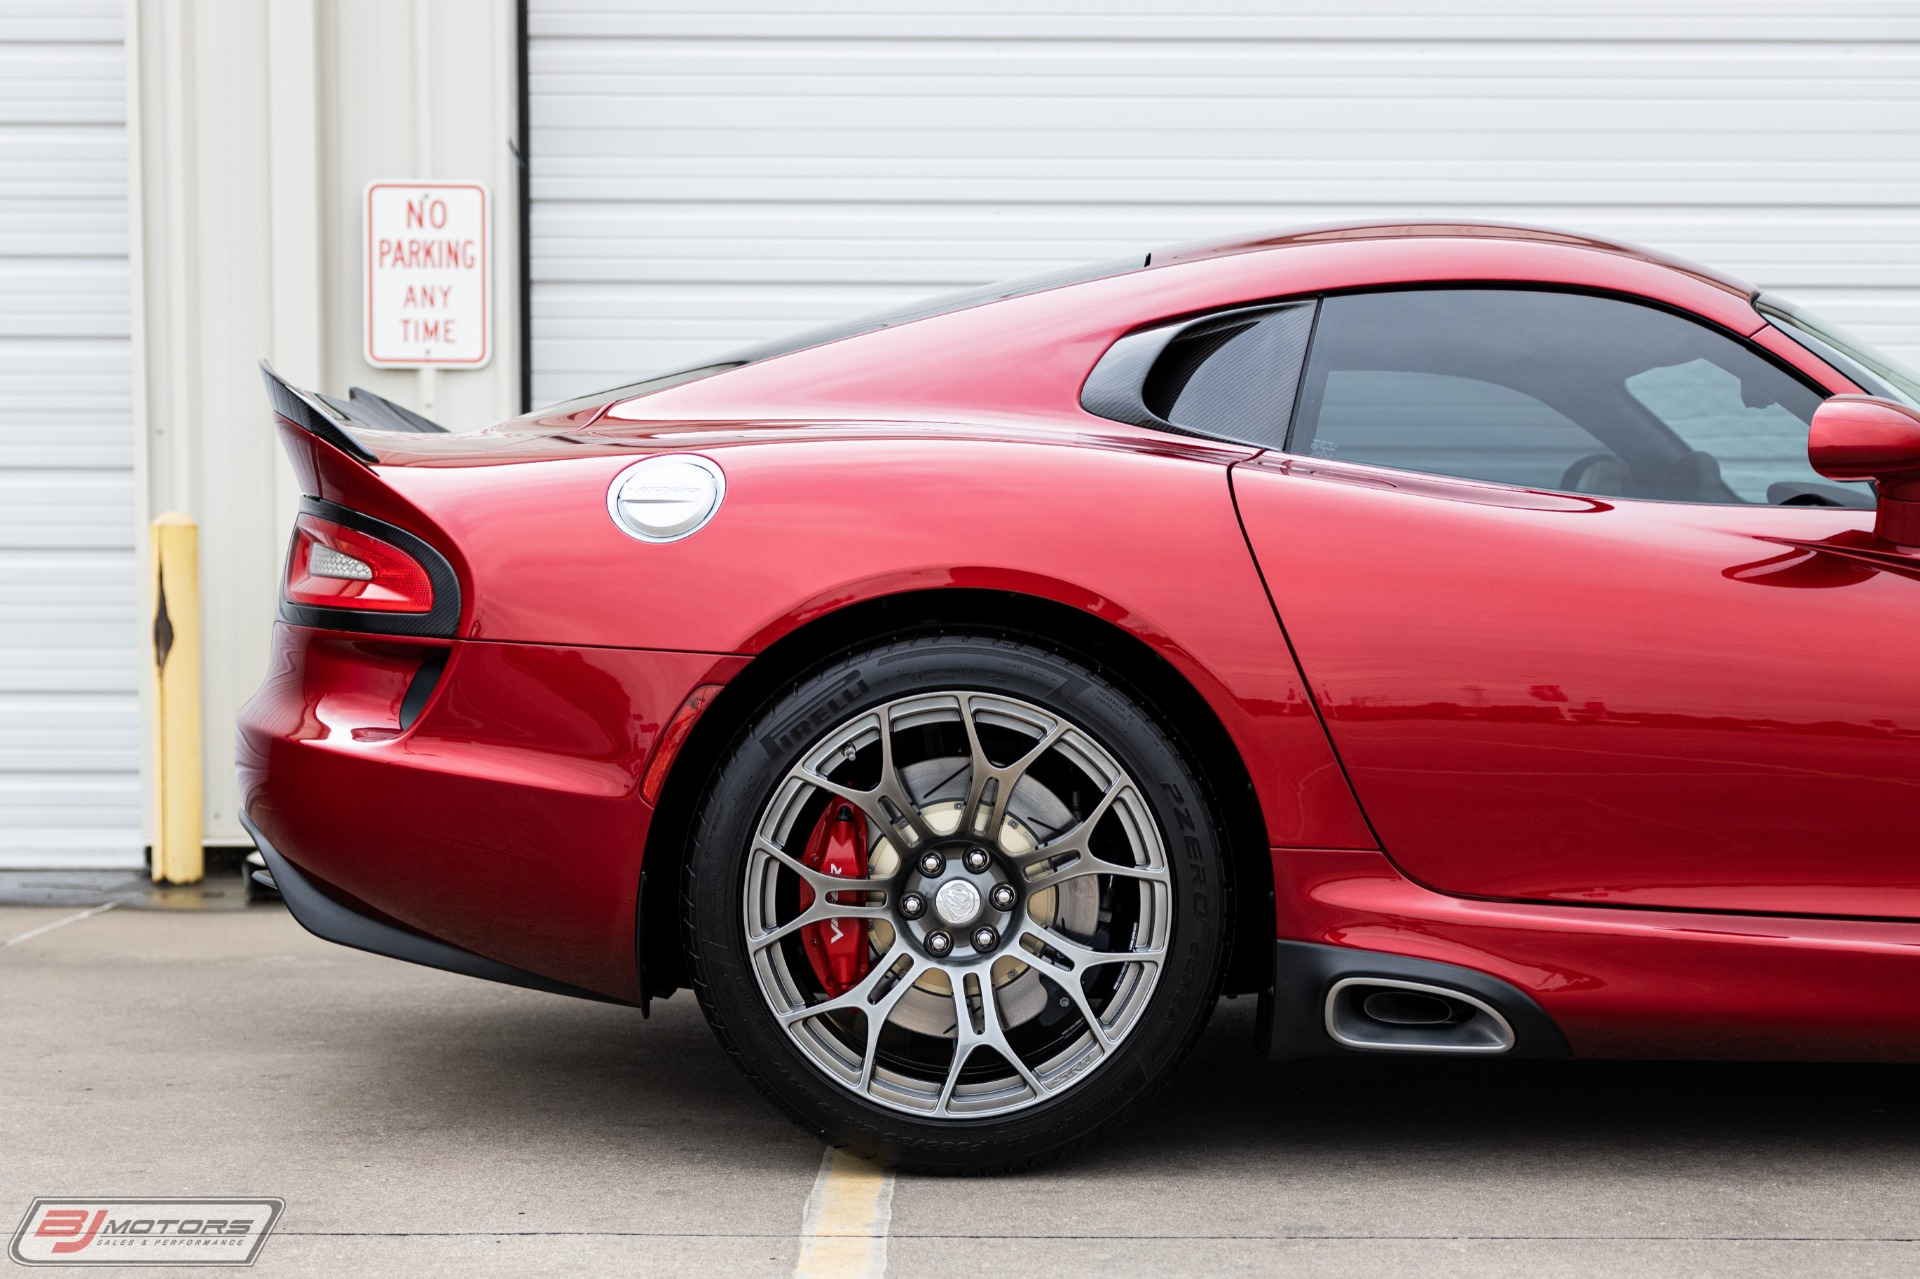 Used-2014-Dodge-Viper-GTS-with-9-Miles-Massive-166K--MSRP